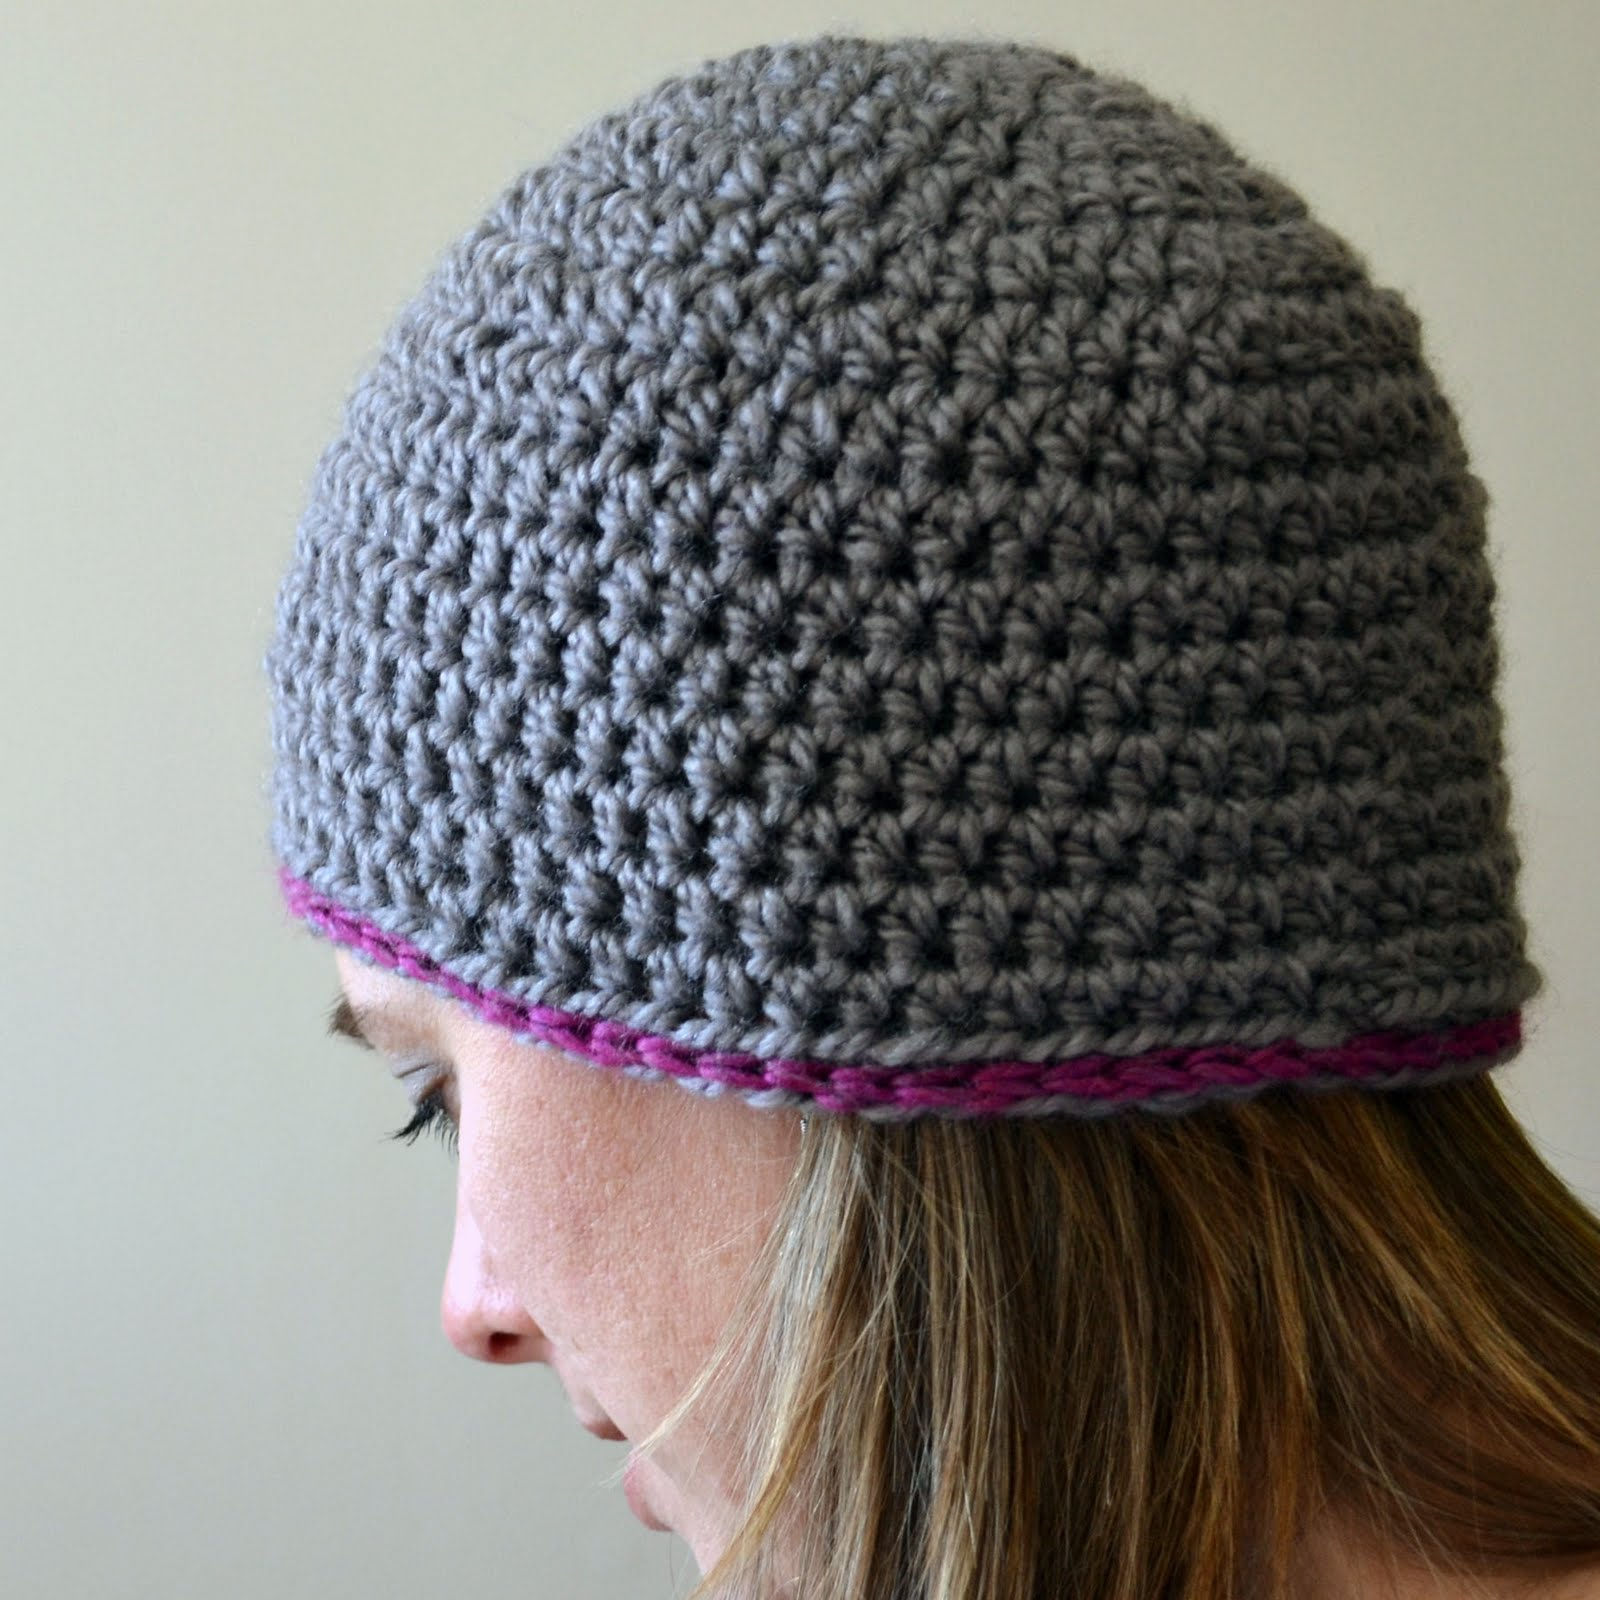 How To Crochet A Beanie For Beginners One for a beanie hat.